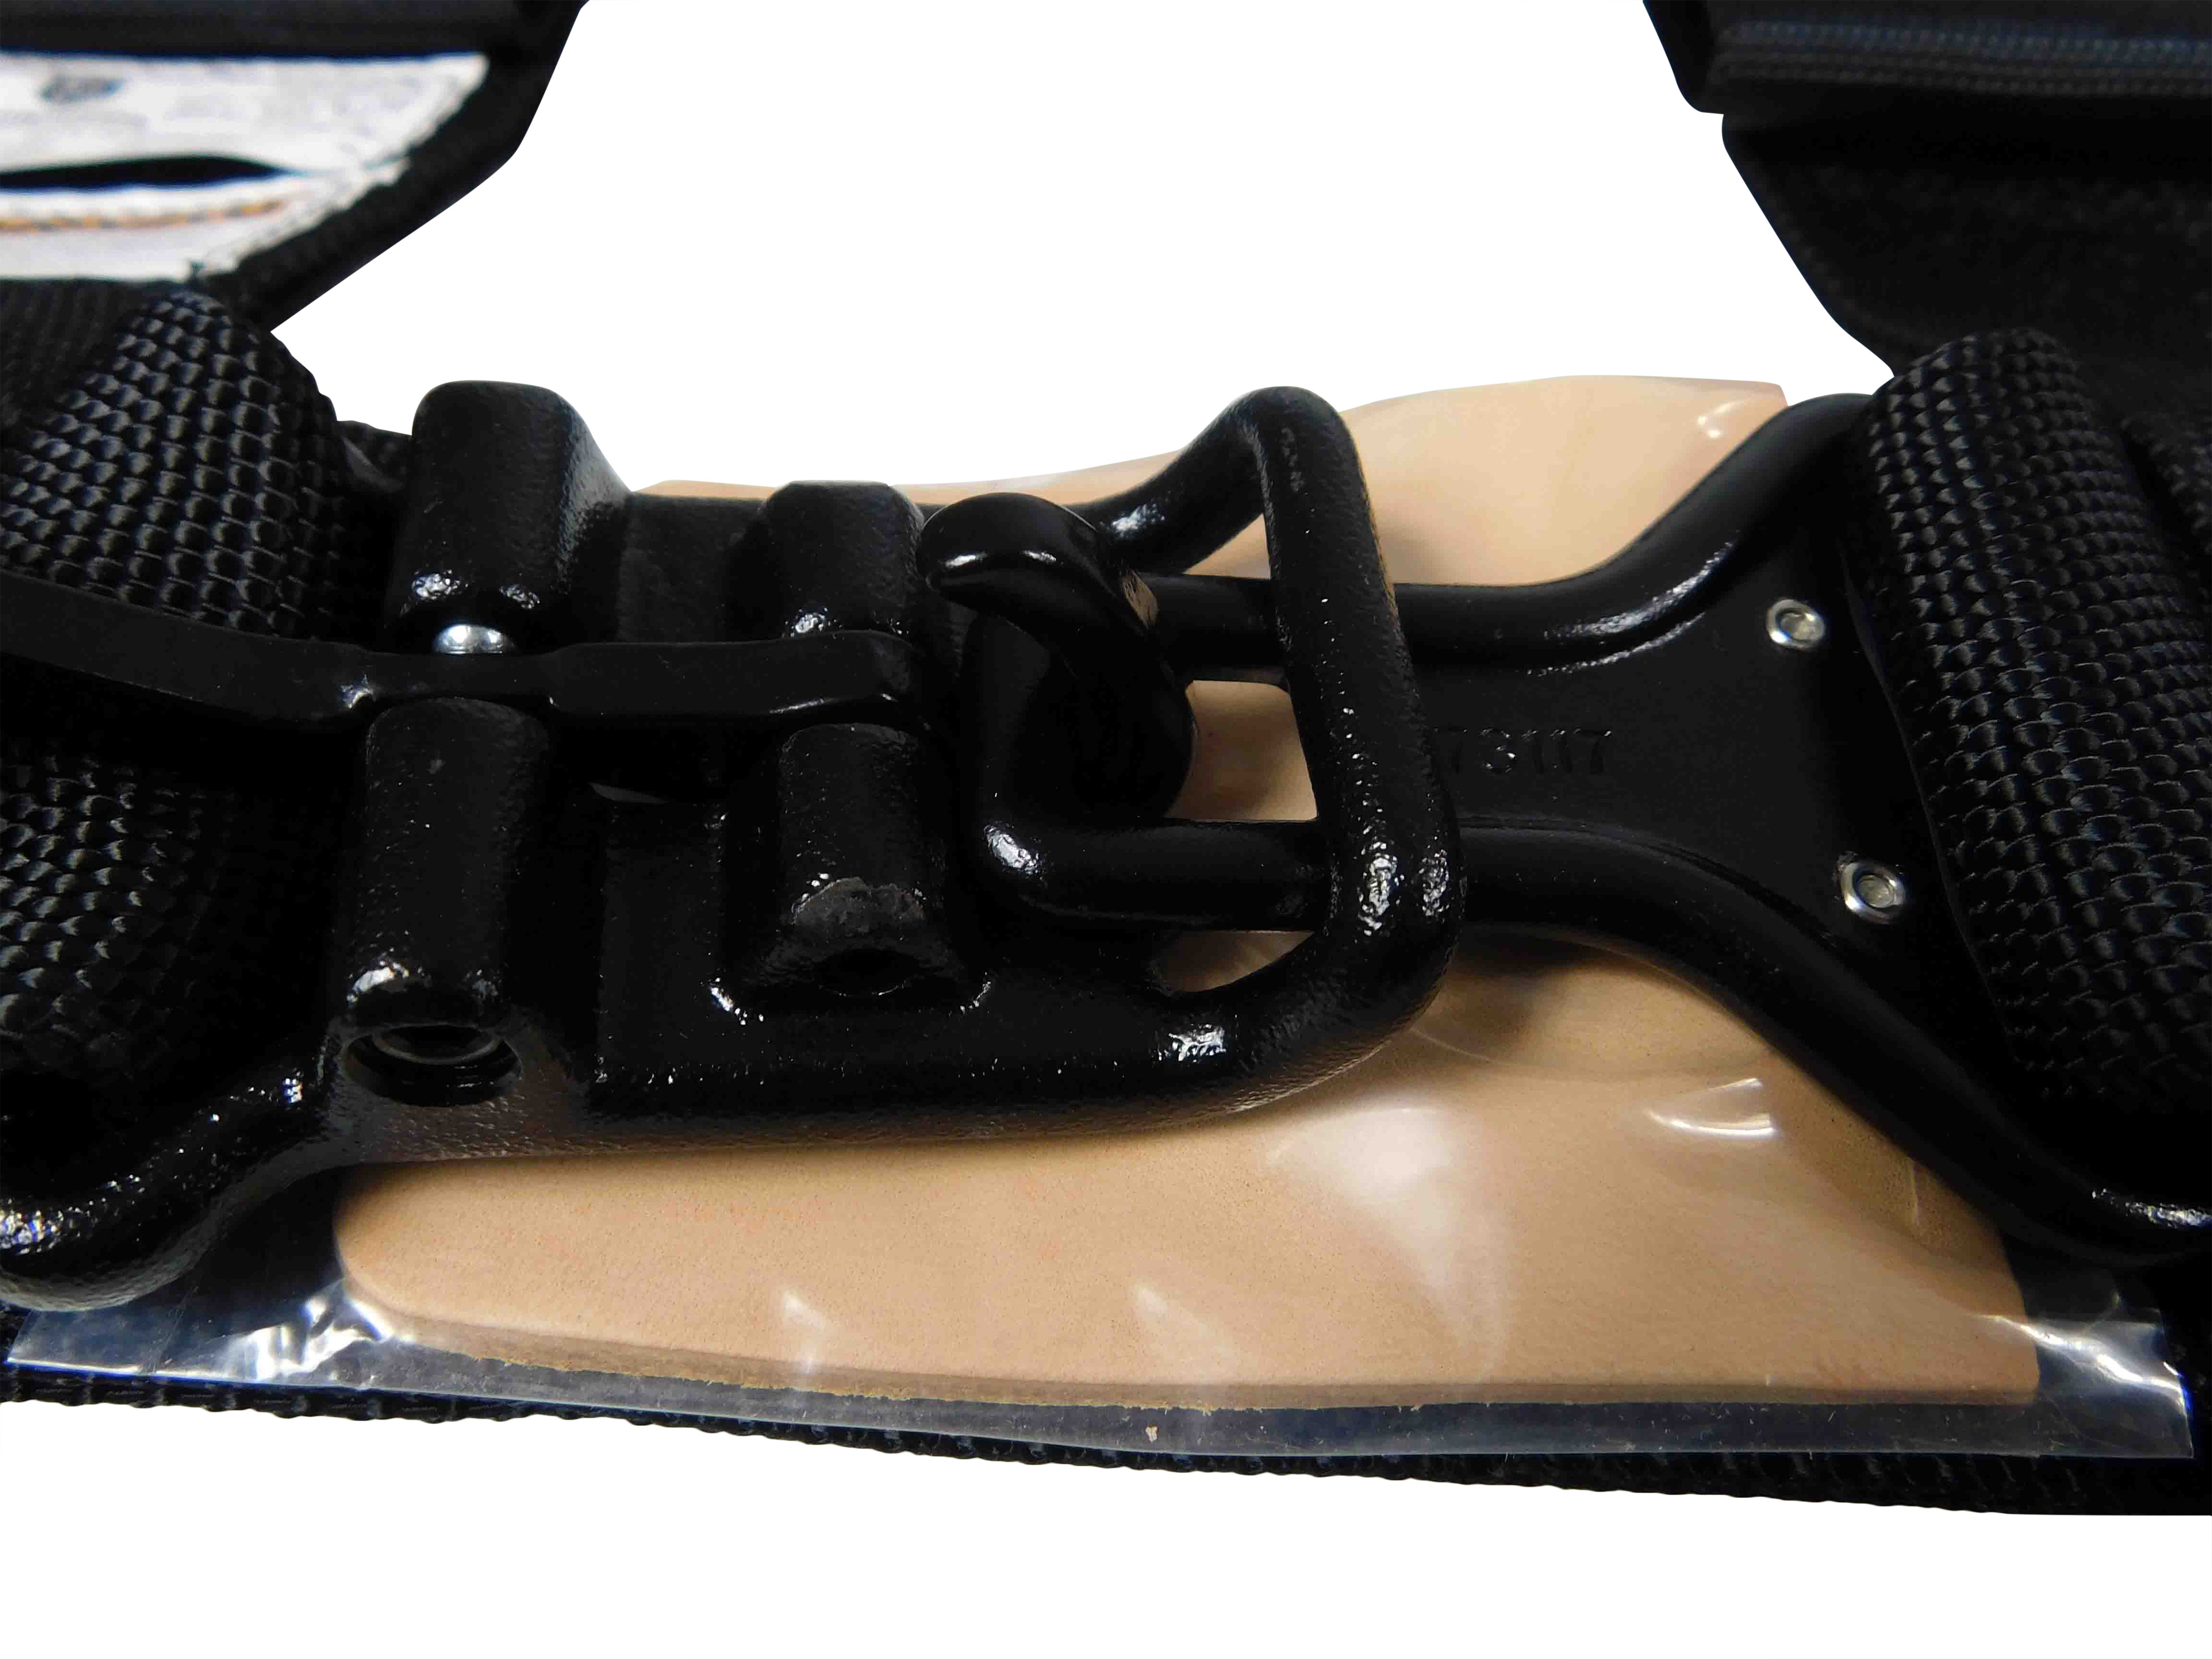 Pro-Armor-A115230-x2-5-Point-3inch-Harness-with-Sewn-in-Pads-Black-2-PACK-image-5